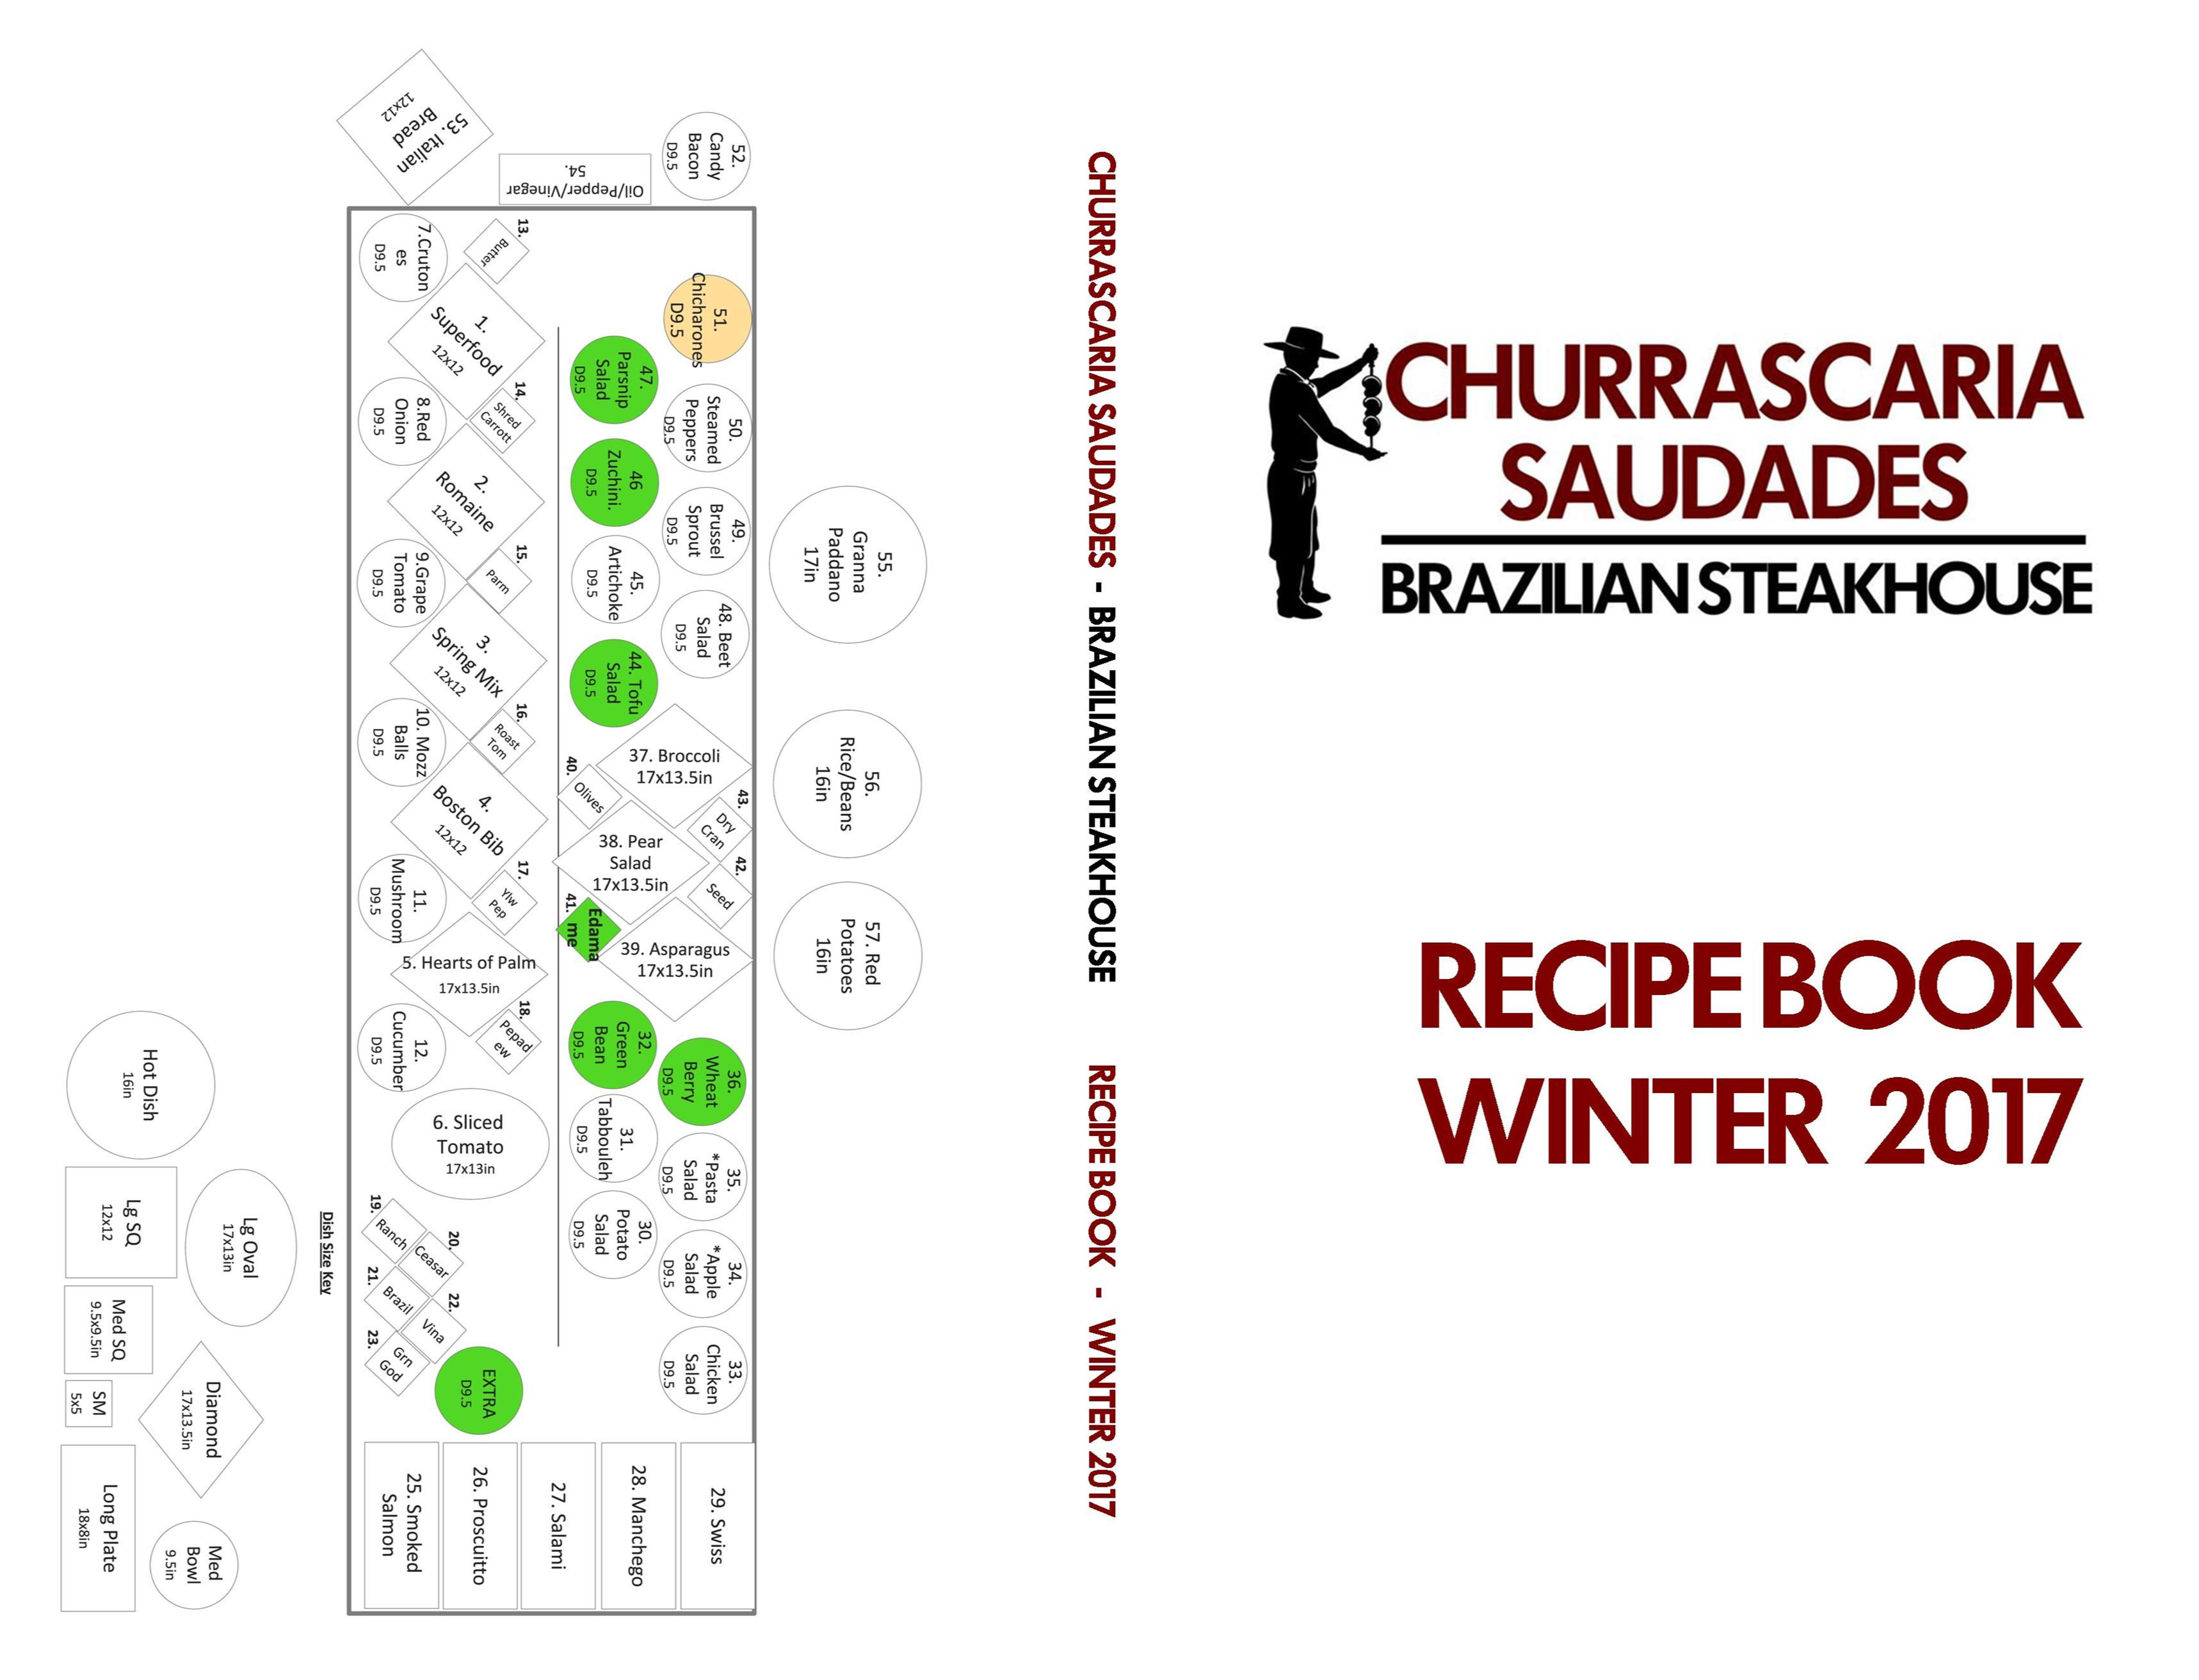 Winter2017 RECIPE BOOK cover image